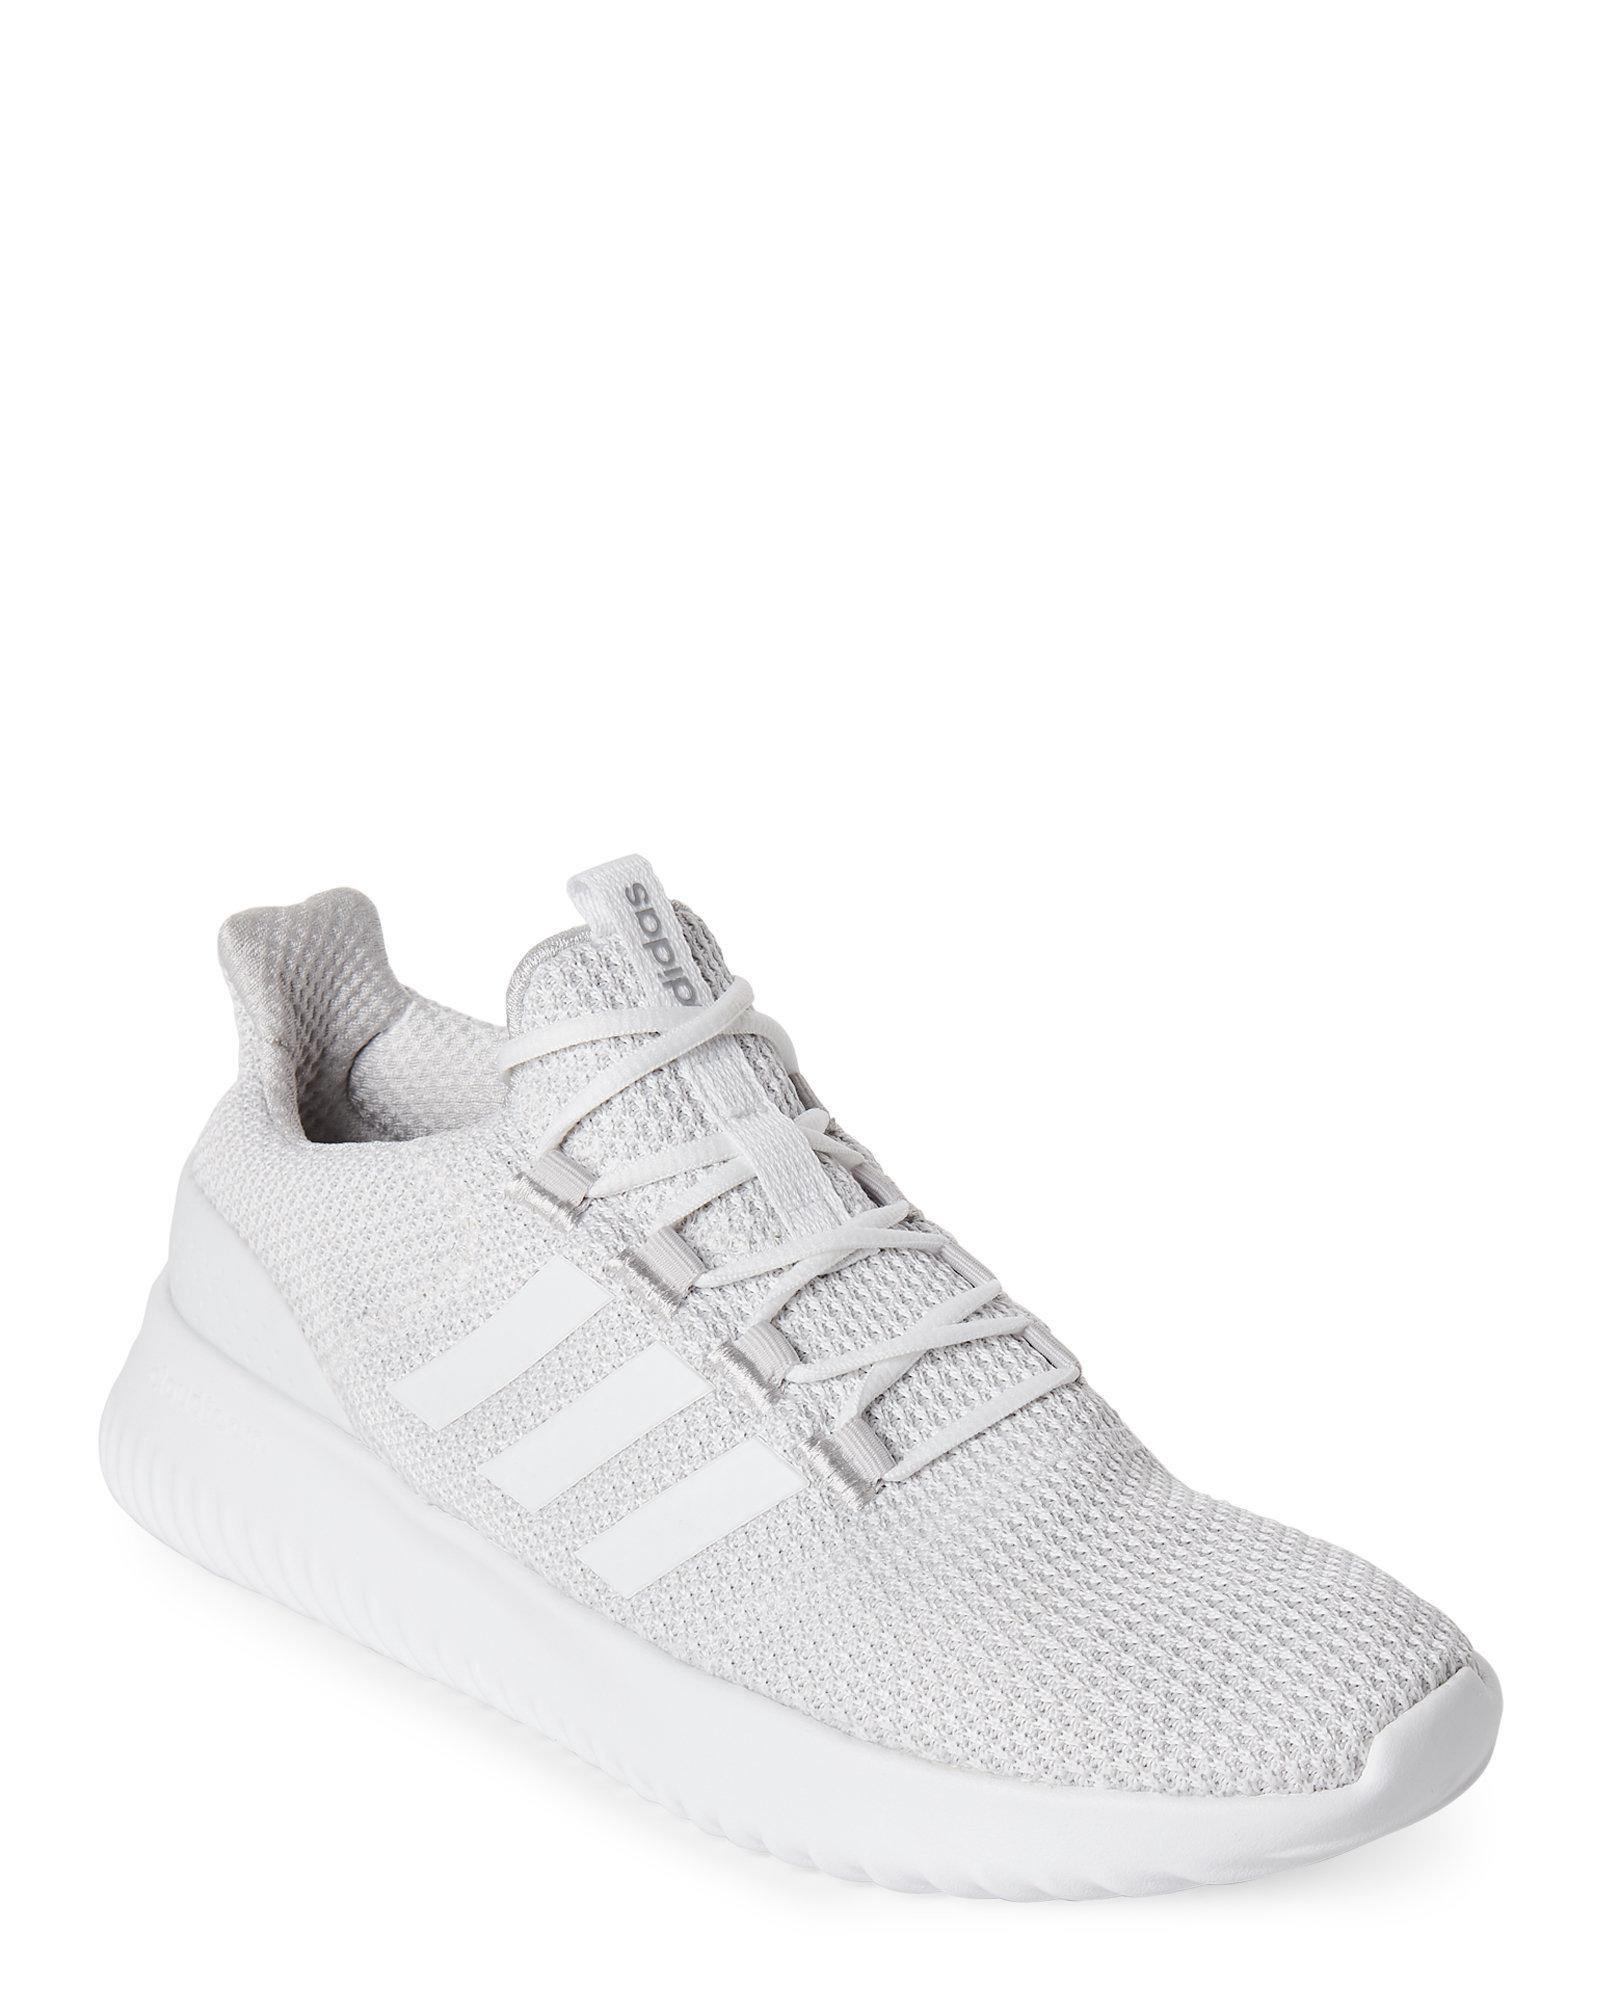 all white cloudfoam adidas- OFF 59